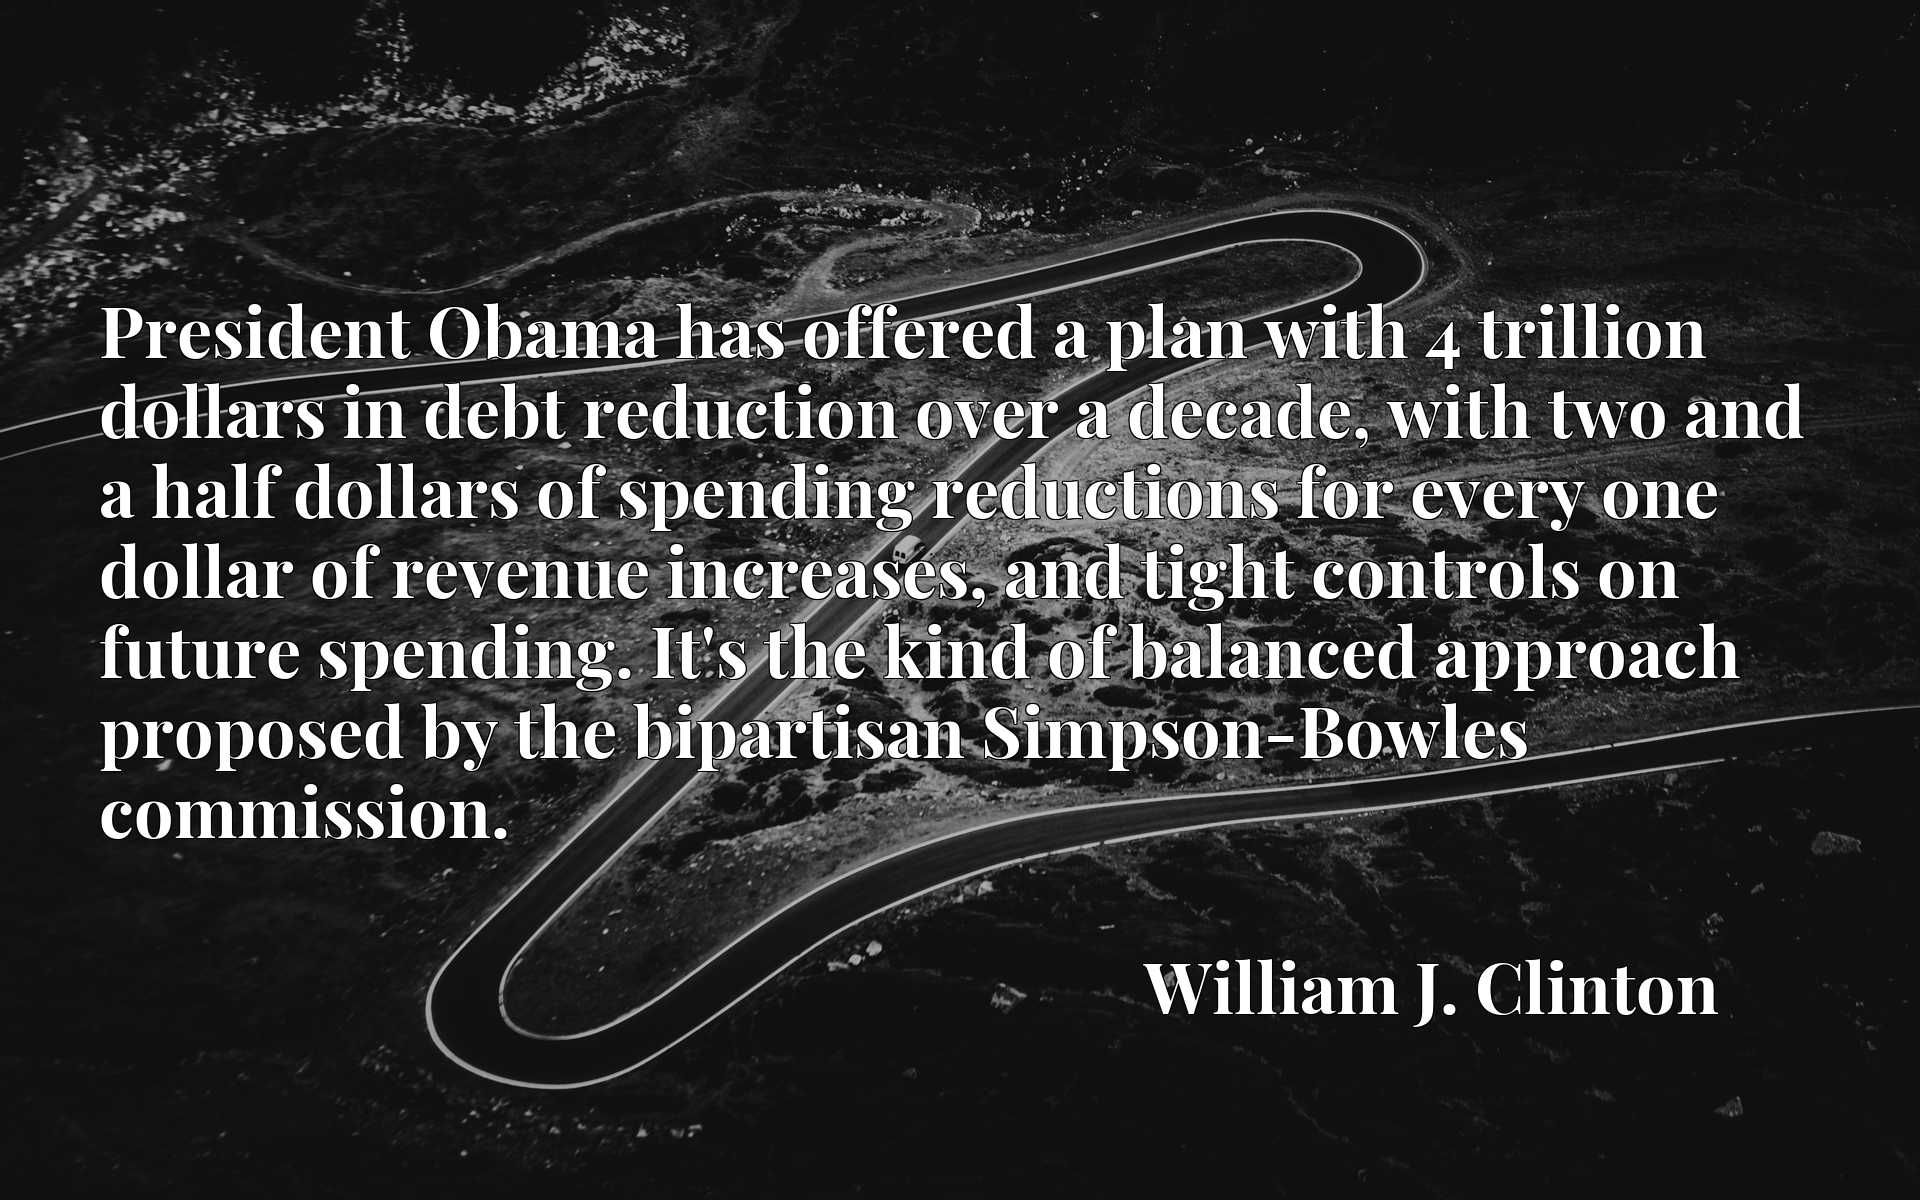 President Obama has offered a plan with 4 trillion dollars in debt reduction over a decade, with two and a half dollars of spending reductions for every one dollar of revenue increases, and tight controls on future spending. It's the kind of balanced approach proposed by the bipartisan Simpson-Bowles commission.